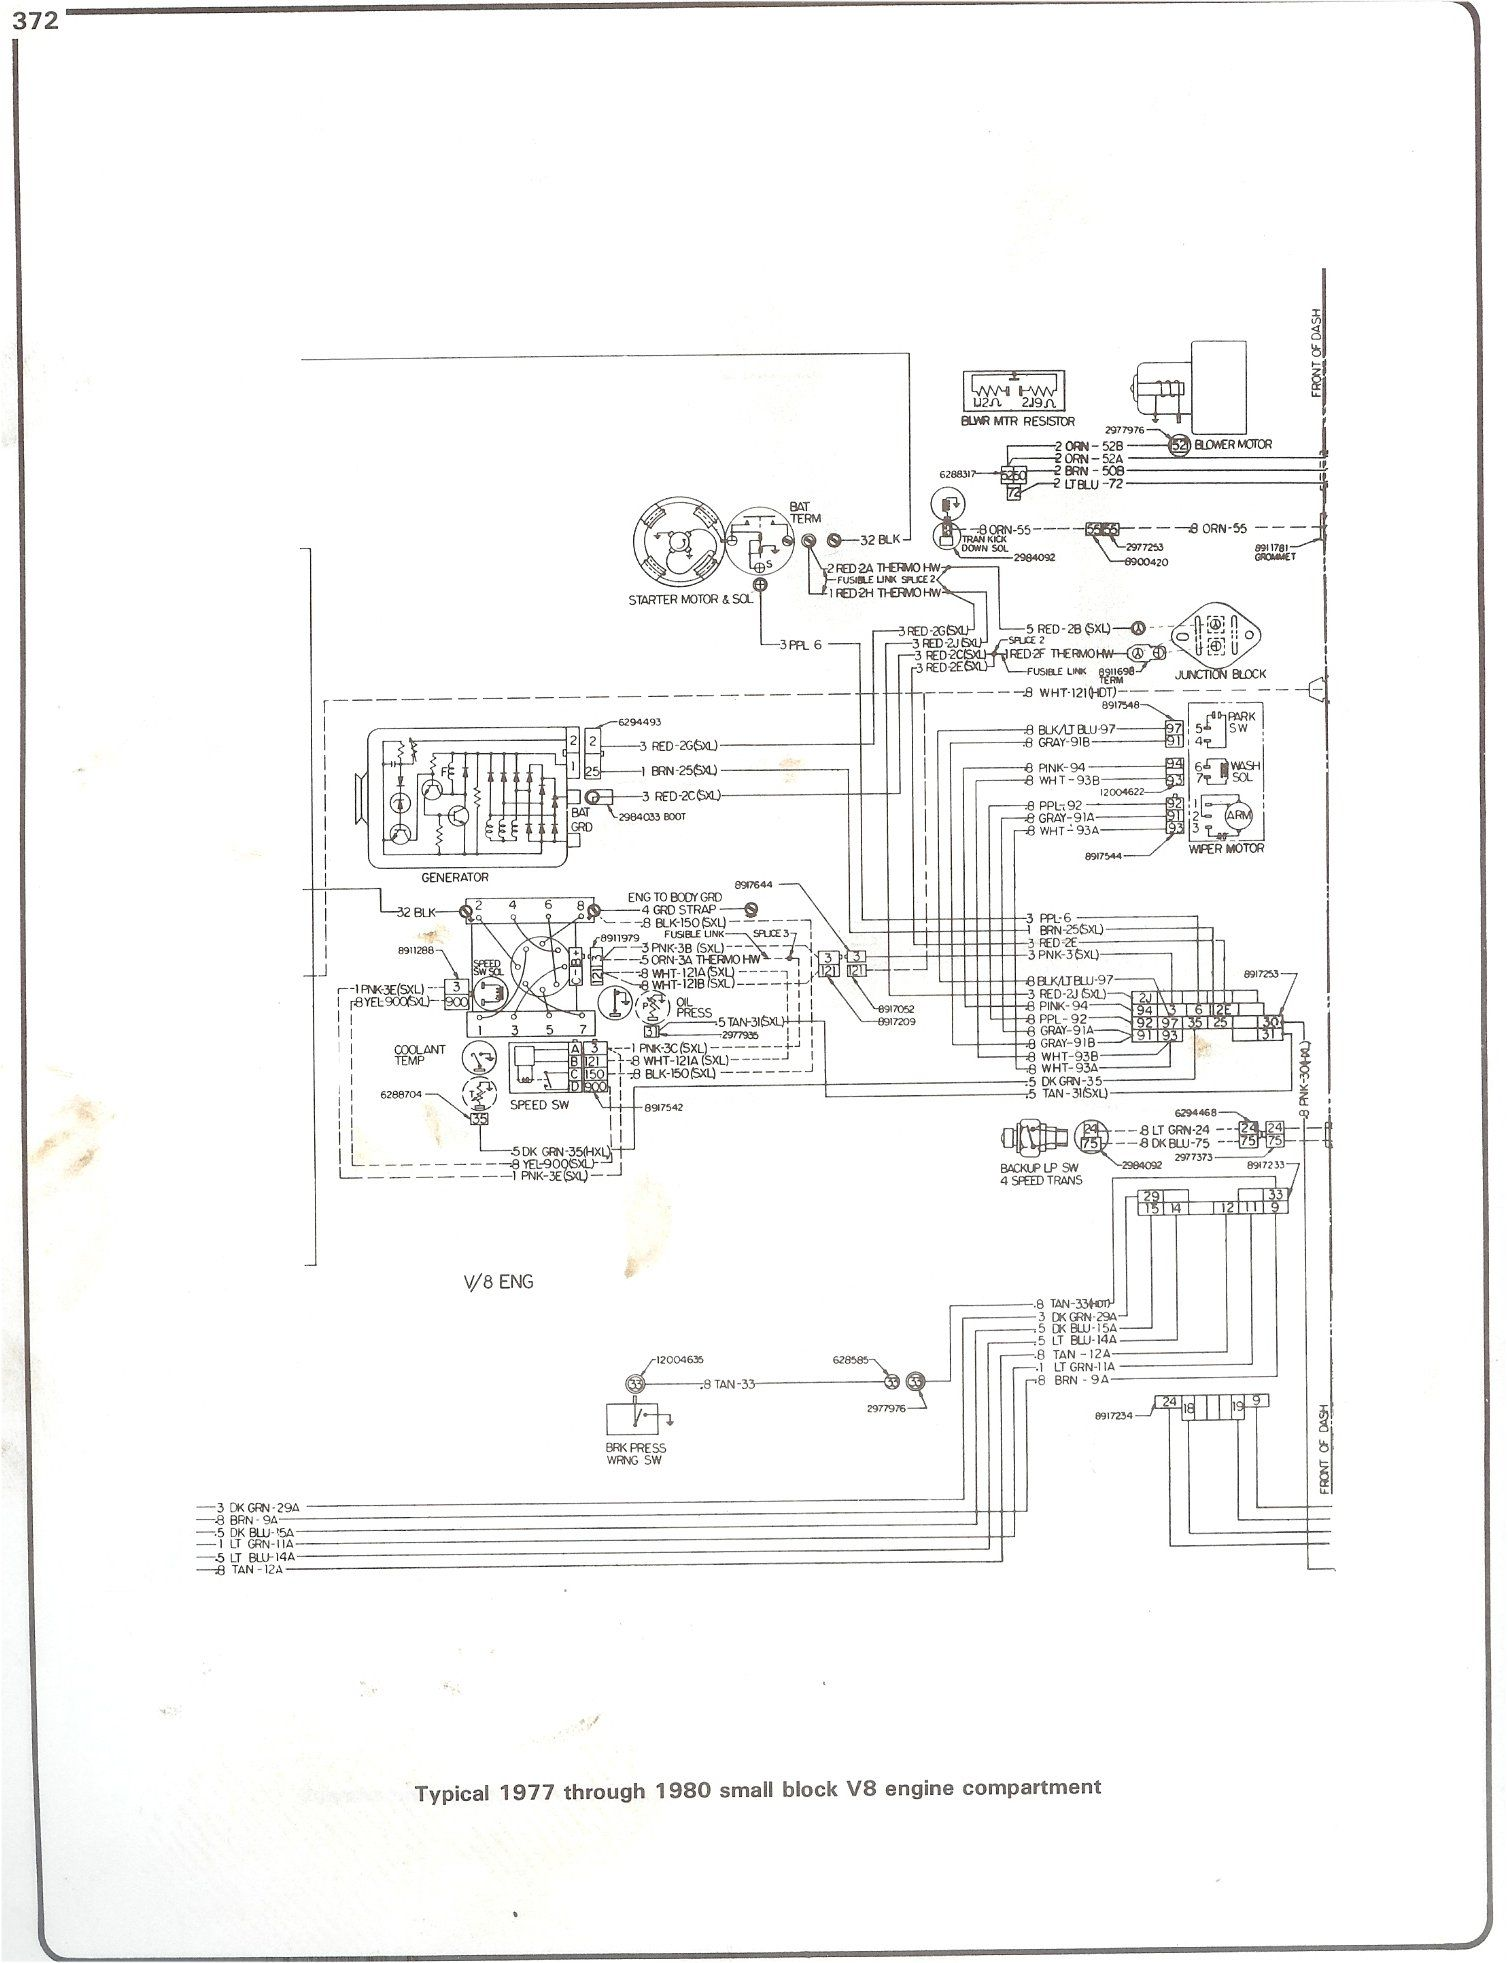 85 chevy truck wiring diagram chevy truck wiring diagram http 85 chevy truck wiring diagram chevy truck wiring diagram http ccuart